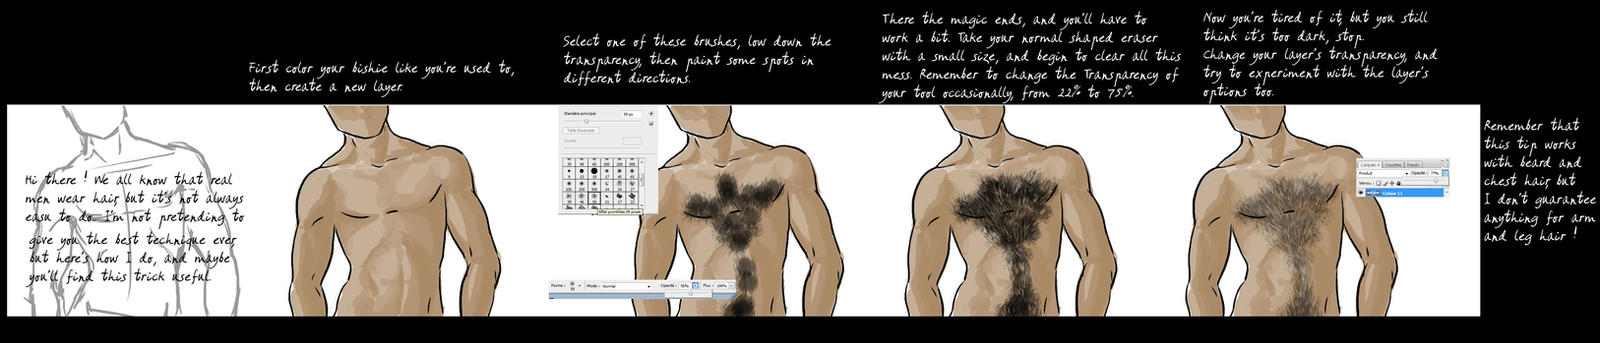 Chest Hair Tutorial By Poly M On Deviantart